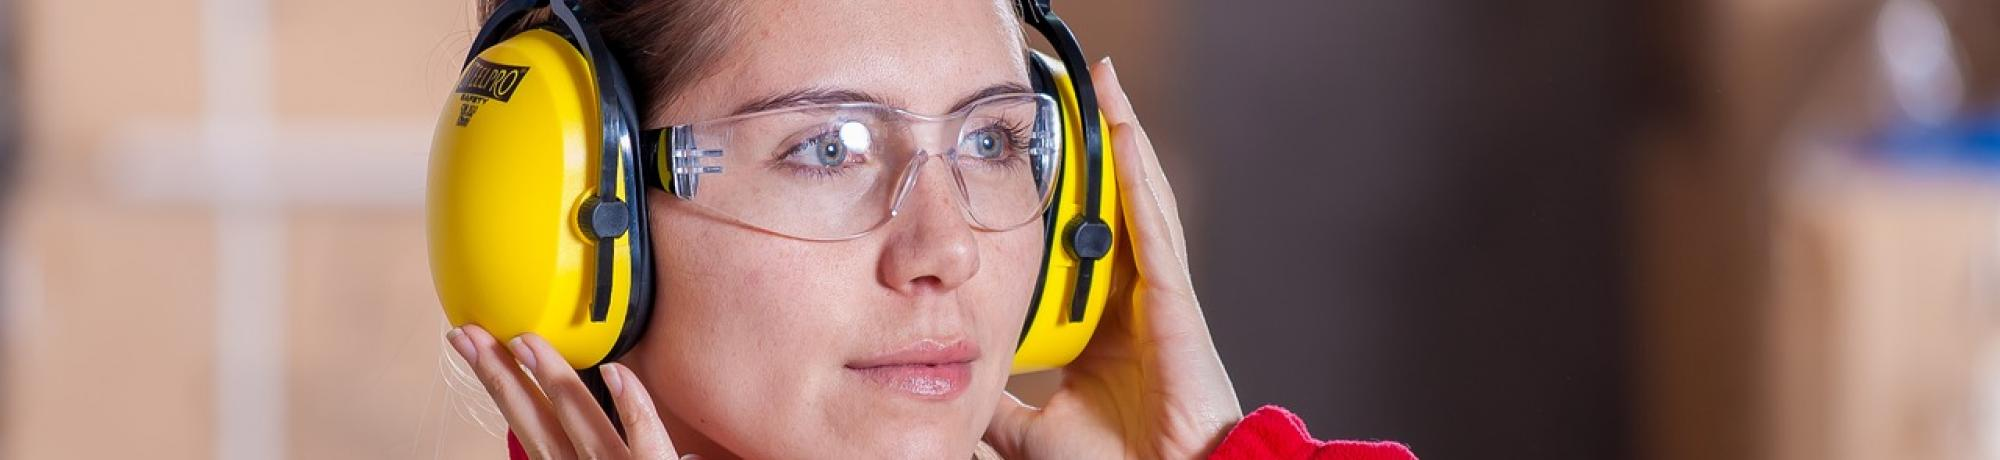 Woman adjusting her ear protection